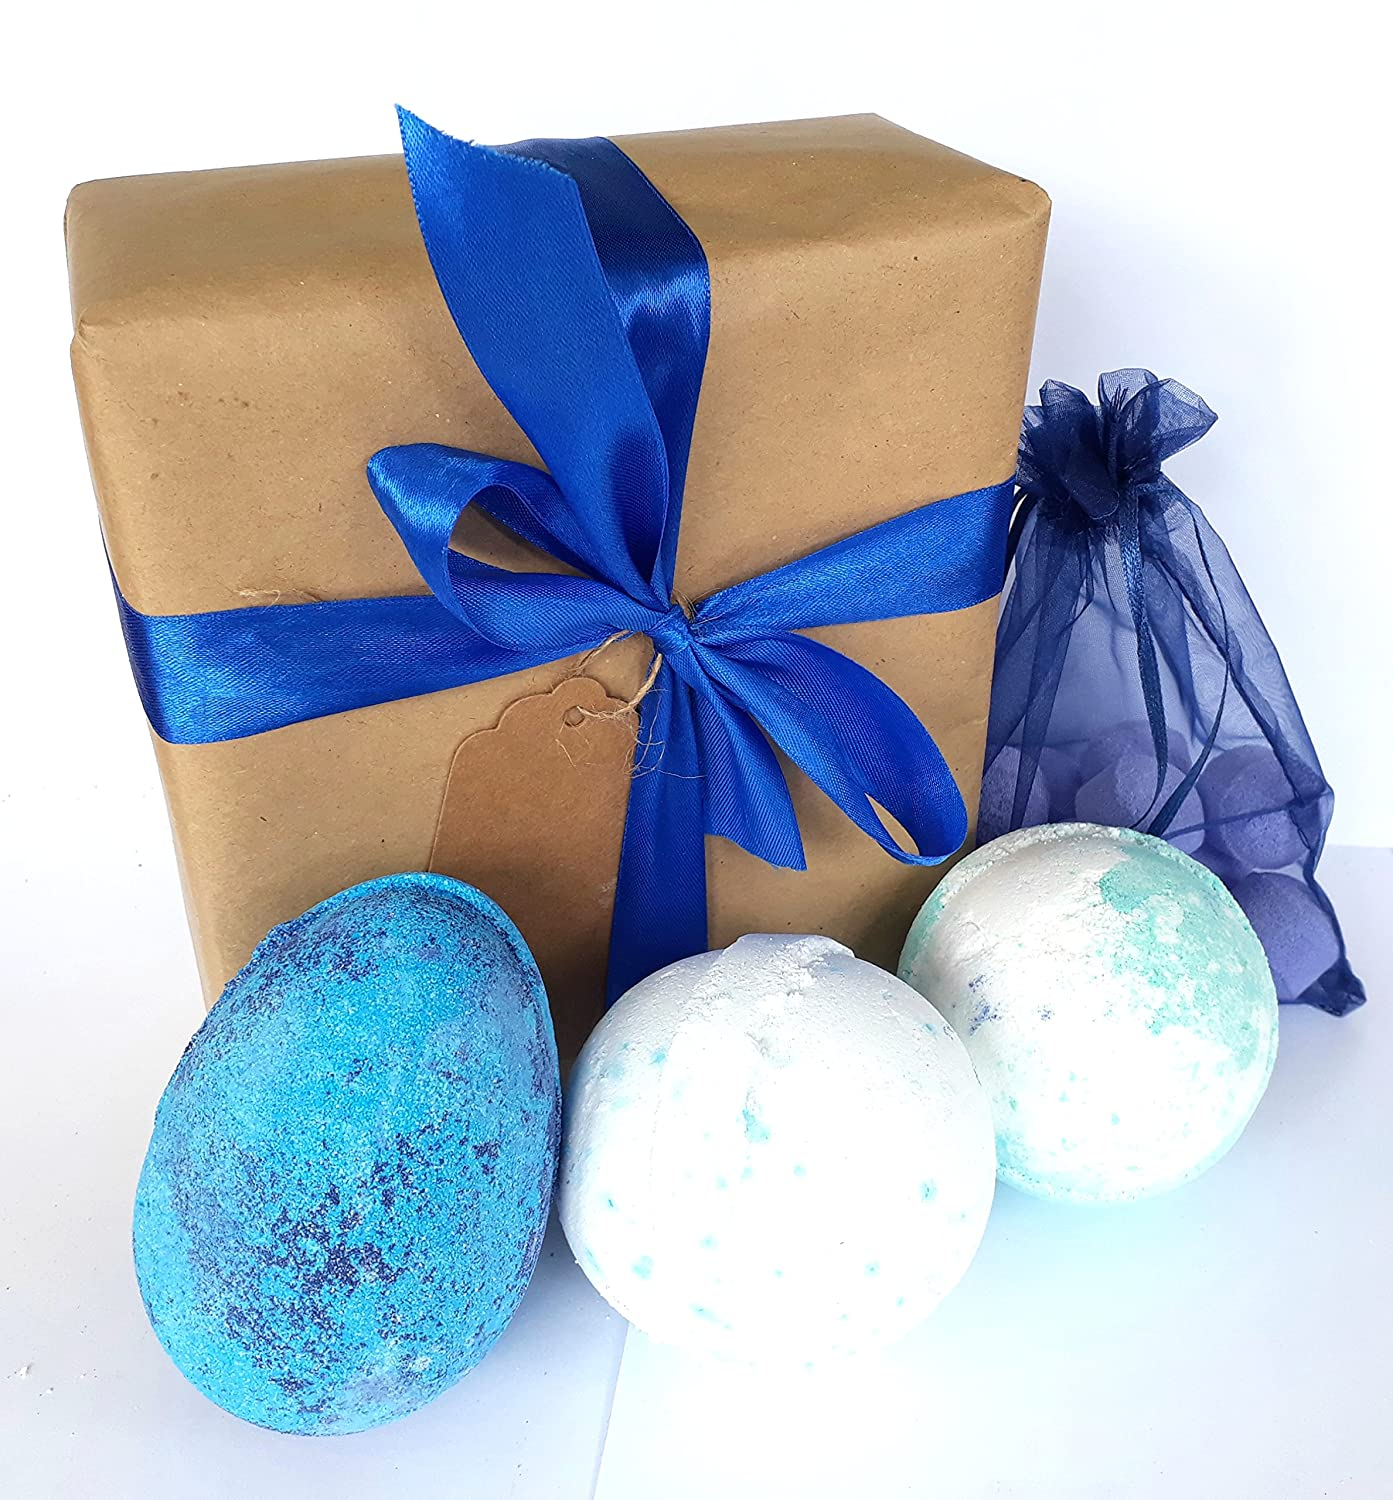 Bath bomb gift box set 2 large Bath bombs, 1 Dragon Egg bath bomb, 10 Mini Chill Pills - Especially for him ~ Treat the man in your life! ~ Ideal birthday, christmas or fathers day gift … (BLUE) ancient wisdom